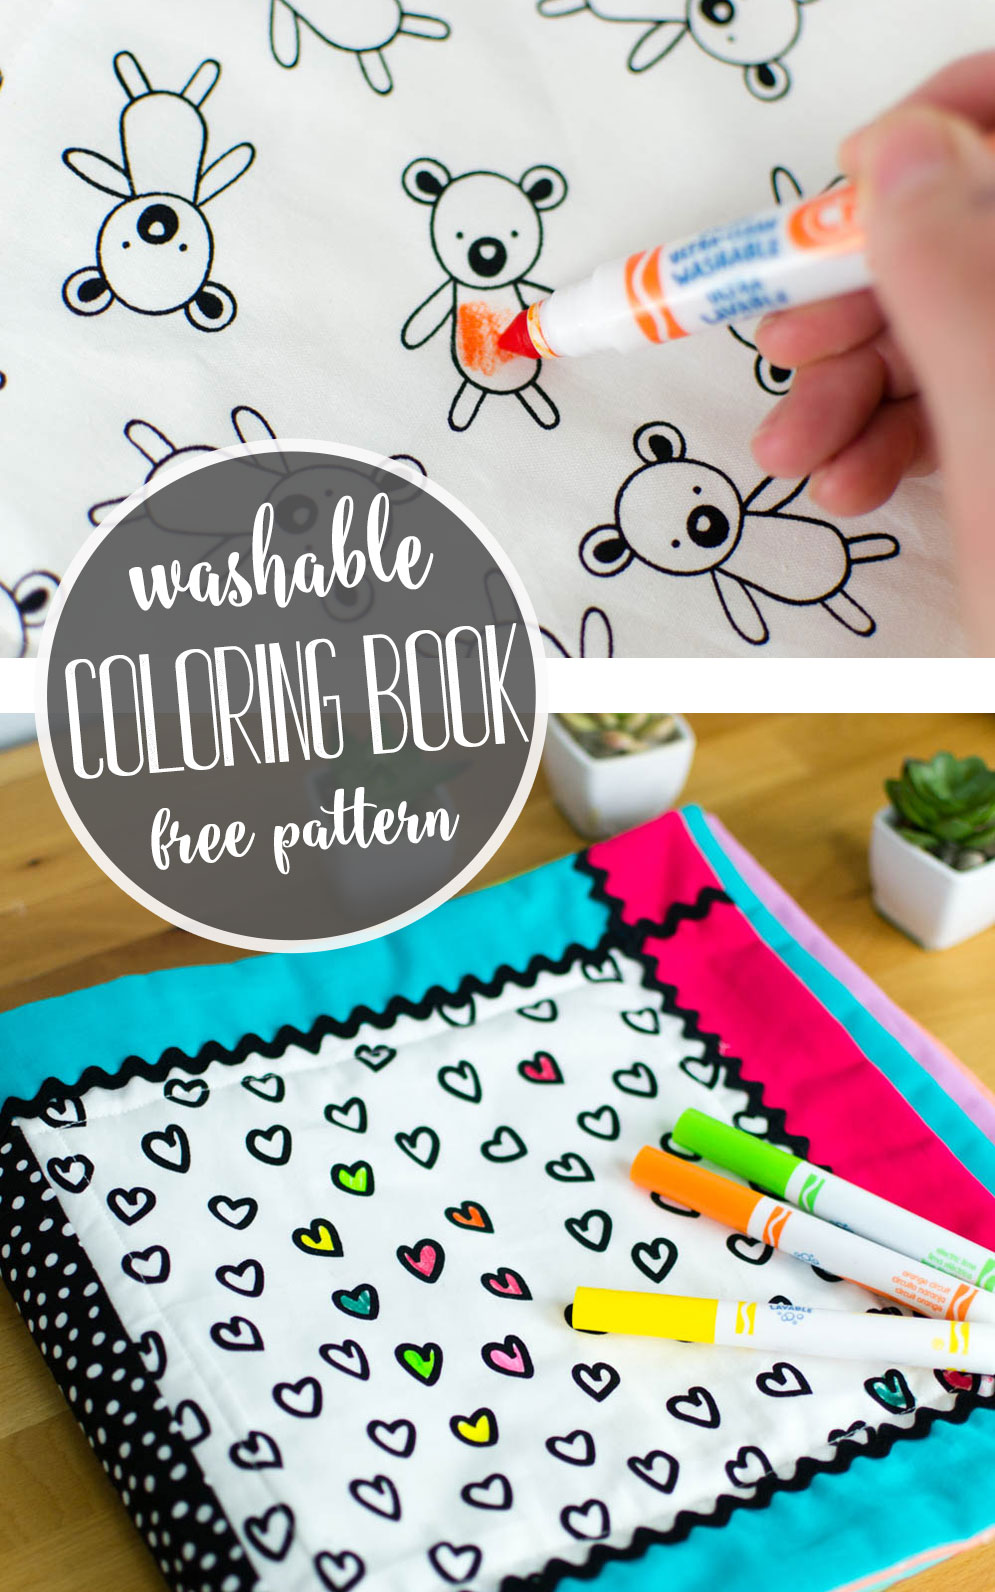 Sew A Washable Coloring Book To Use Over And Over Again Sewcanshe Free Sewing Patterns And Tutorials